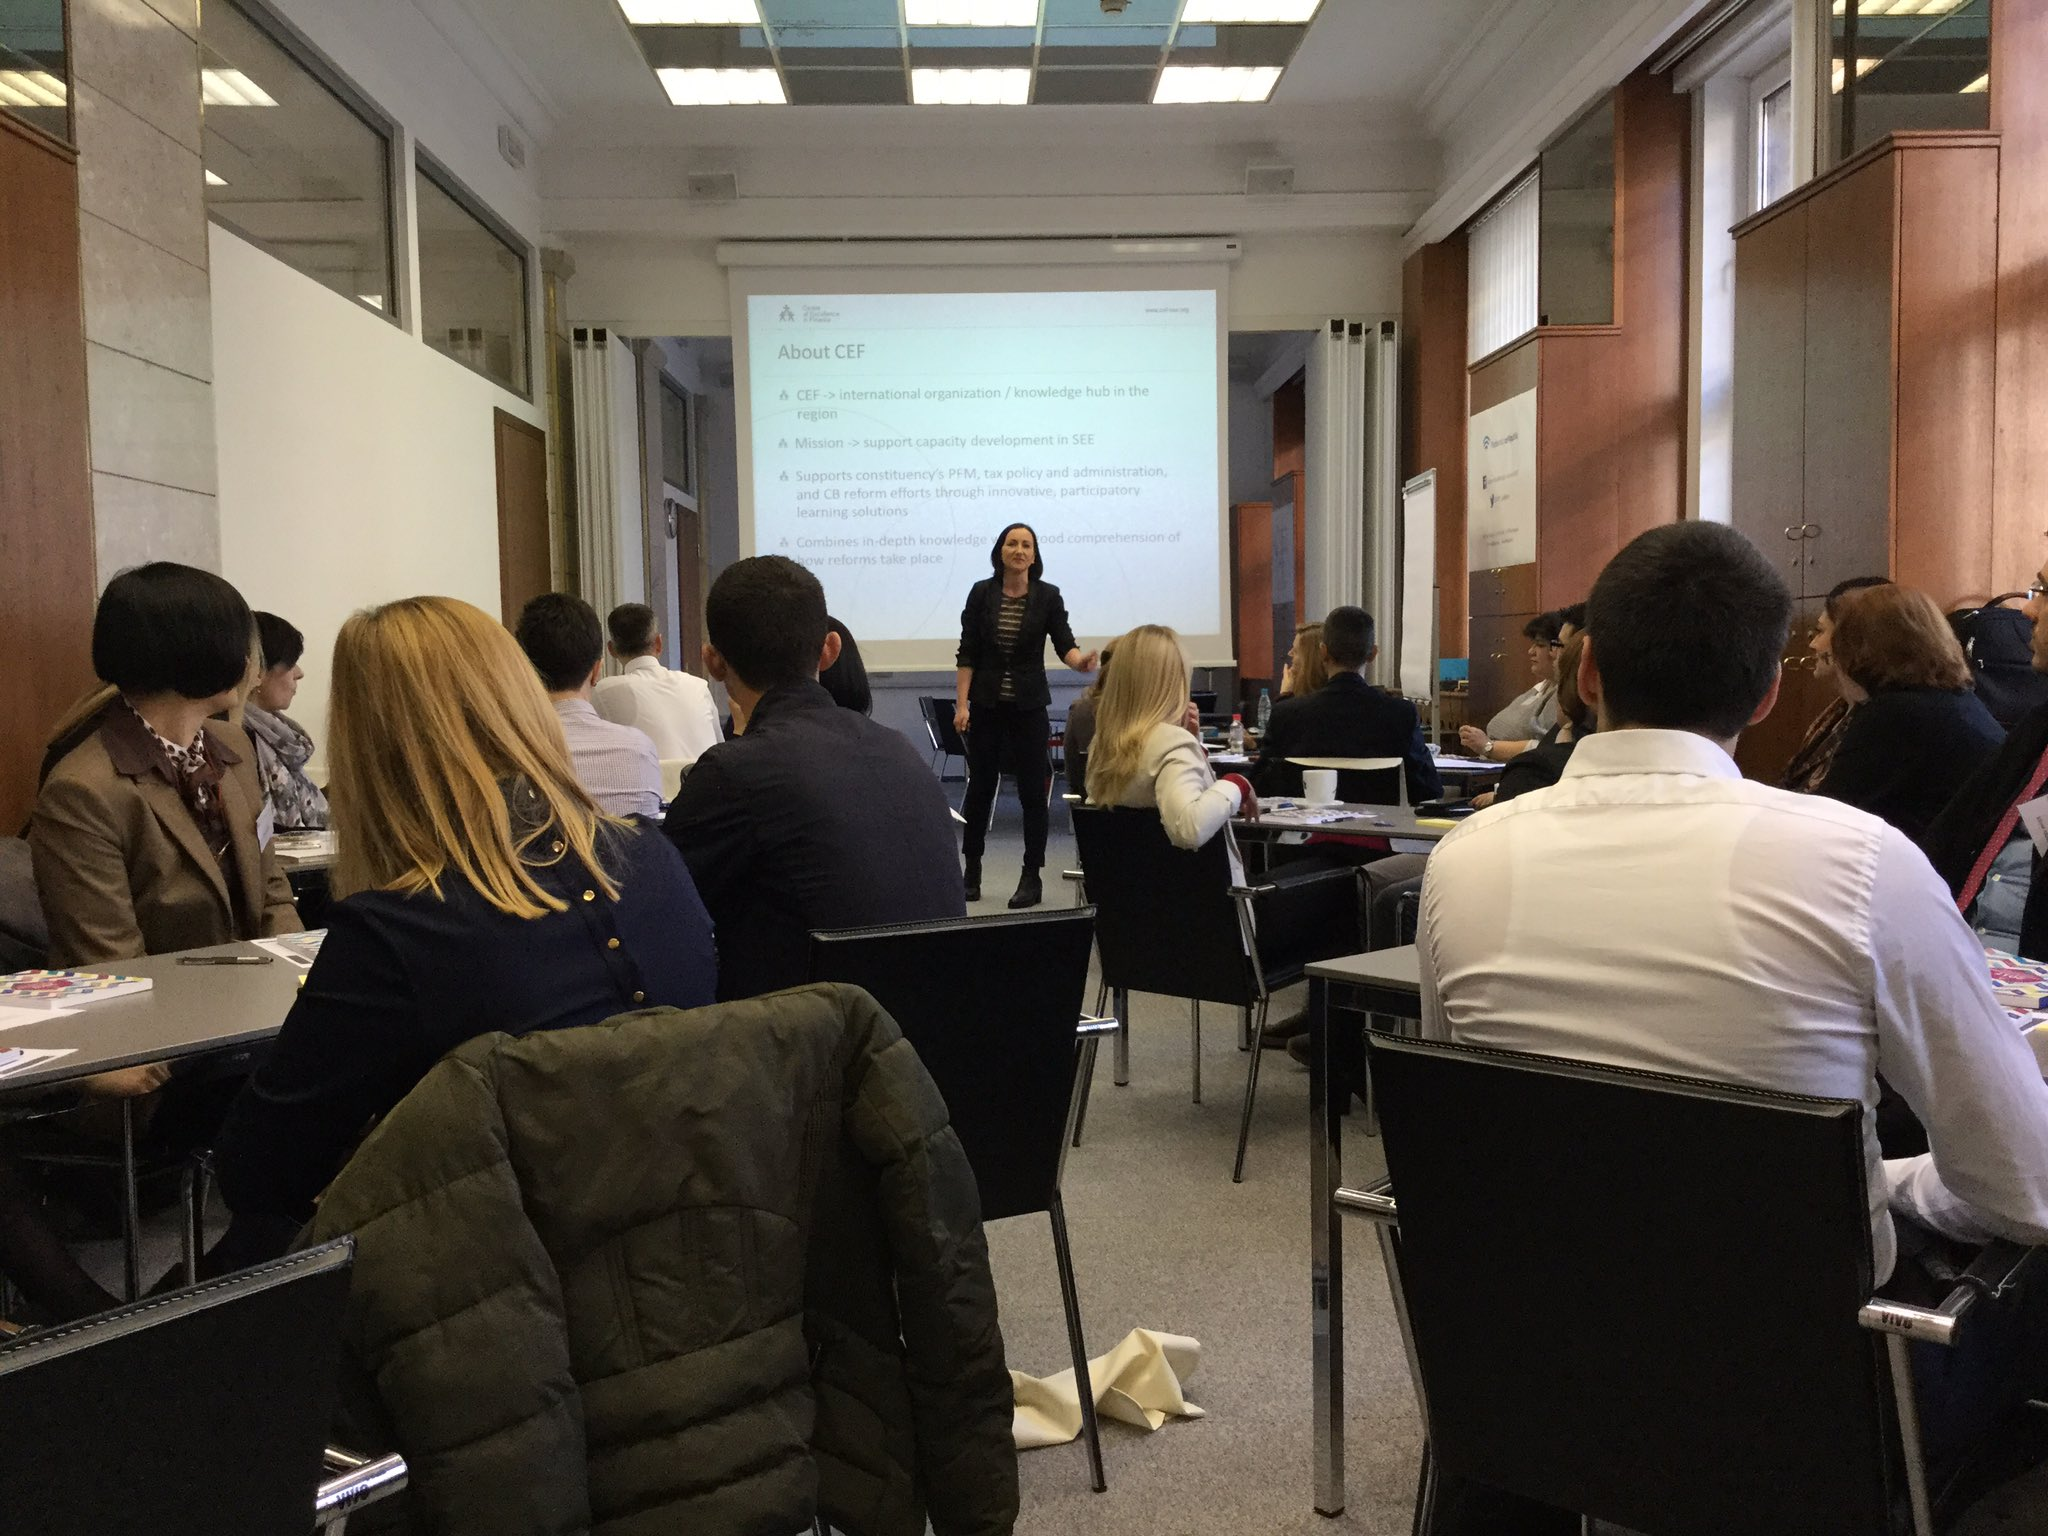 CEF facilitator Ziva Lautar welcomes participants, faculty and partners. Ready to start the third regional workshop! https://t.co/k5OKnF6f5j